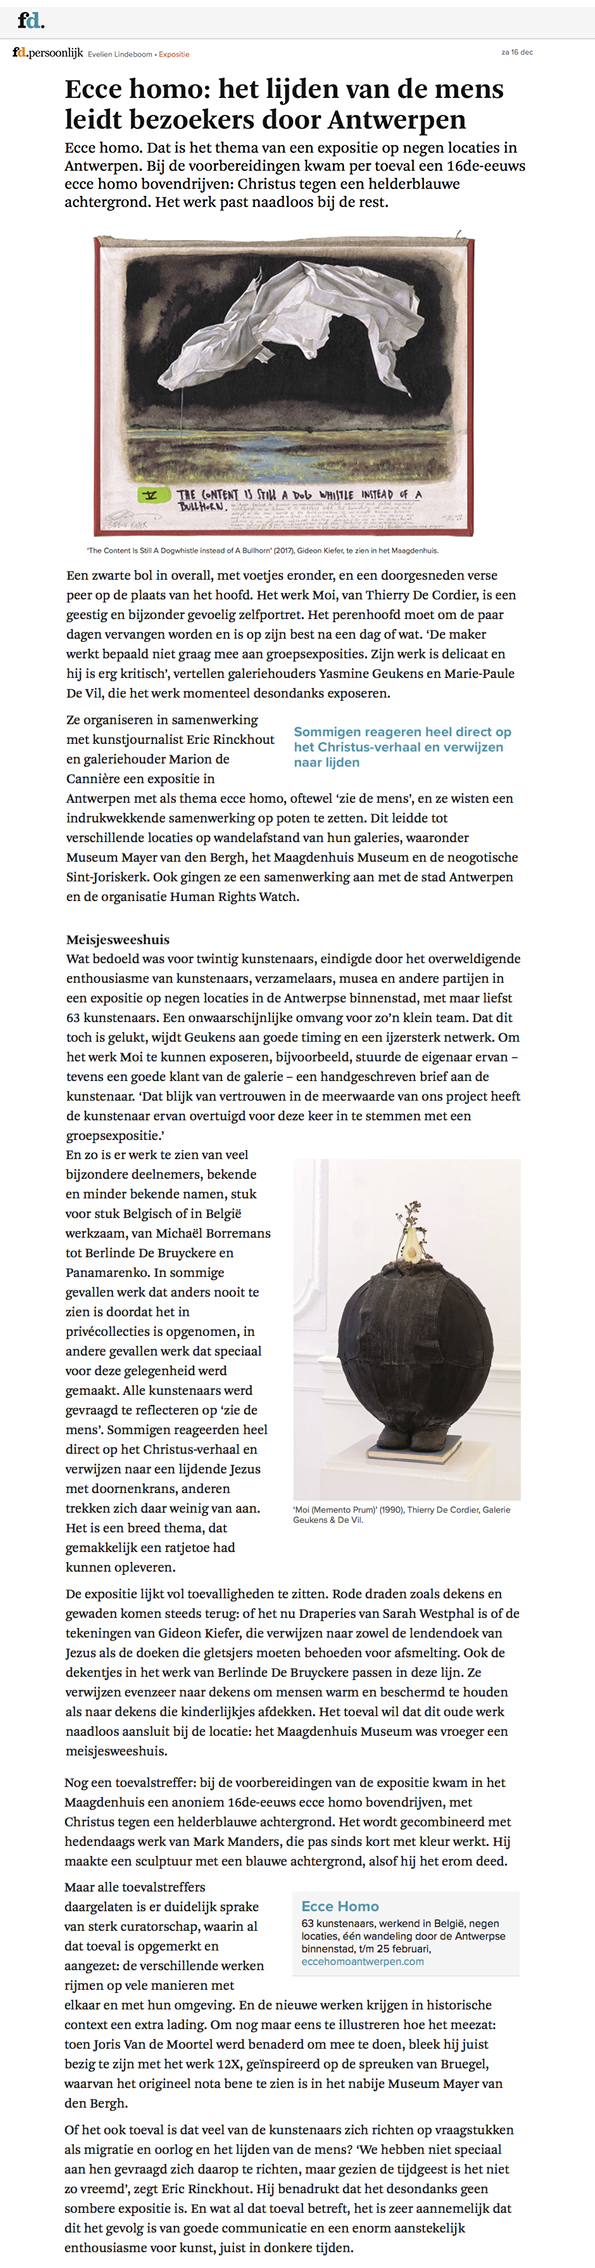 Financieel_Dagblad_Ecce_Homo_16-12-2017.jpg